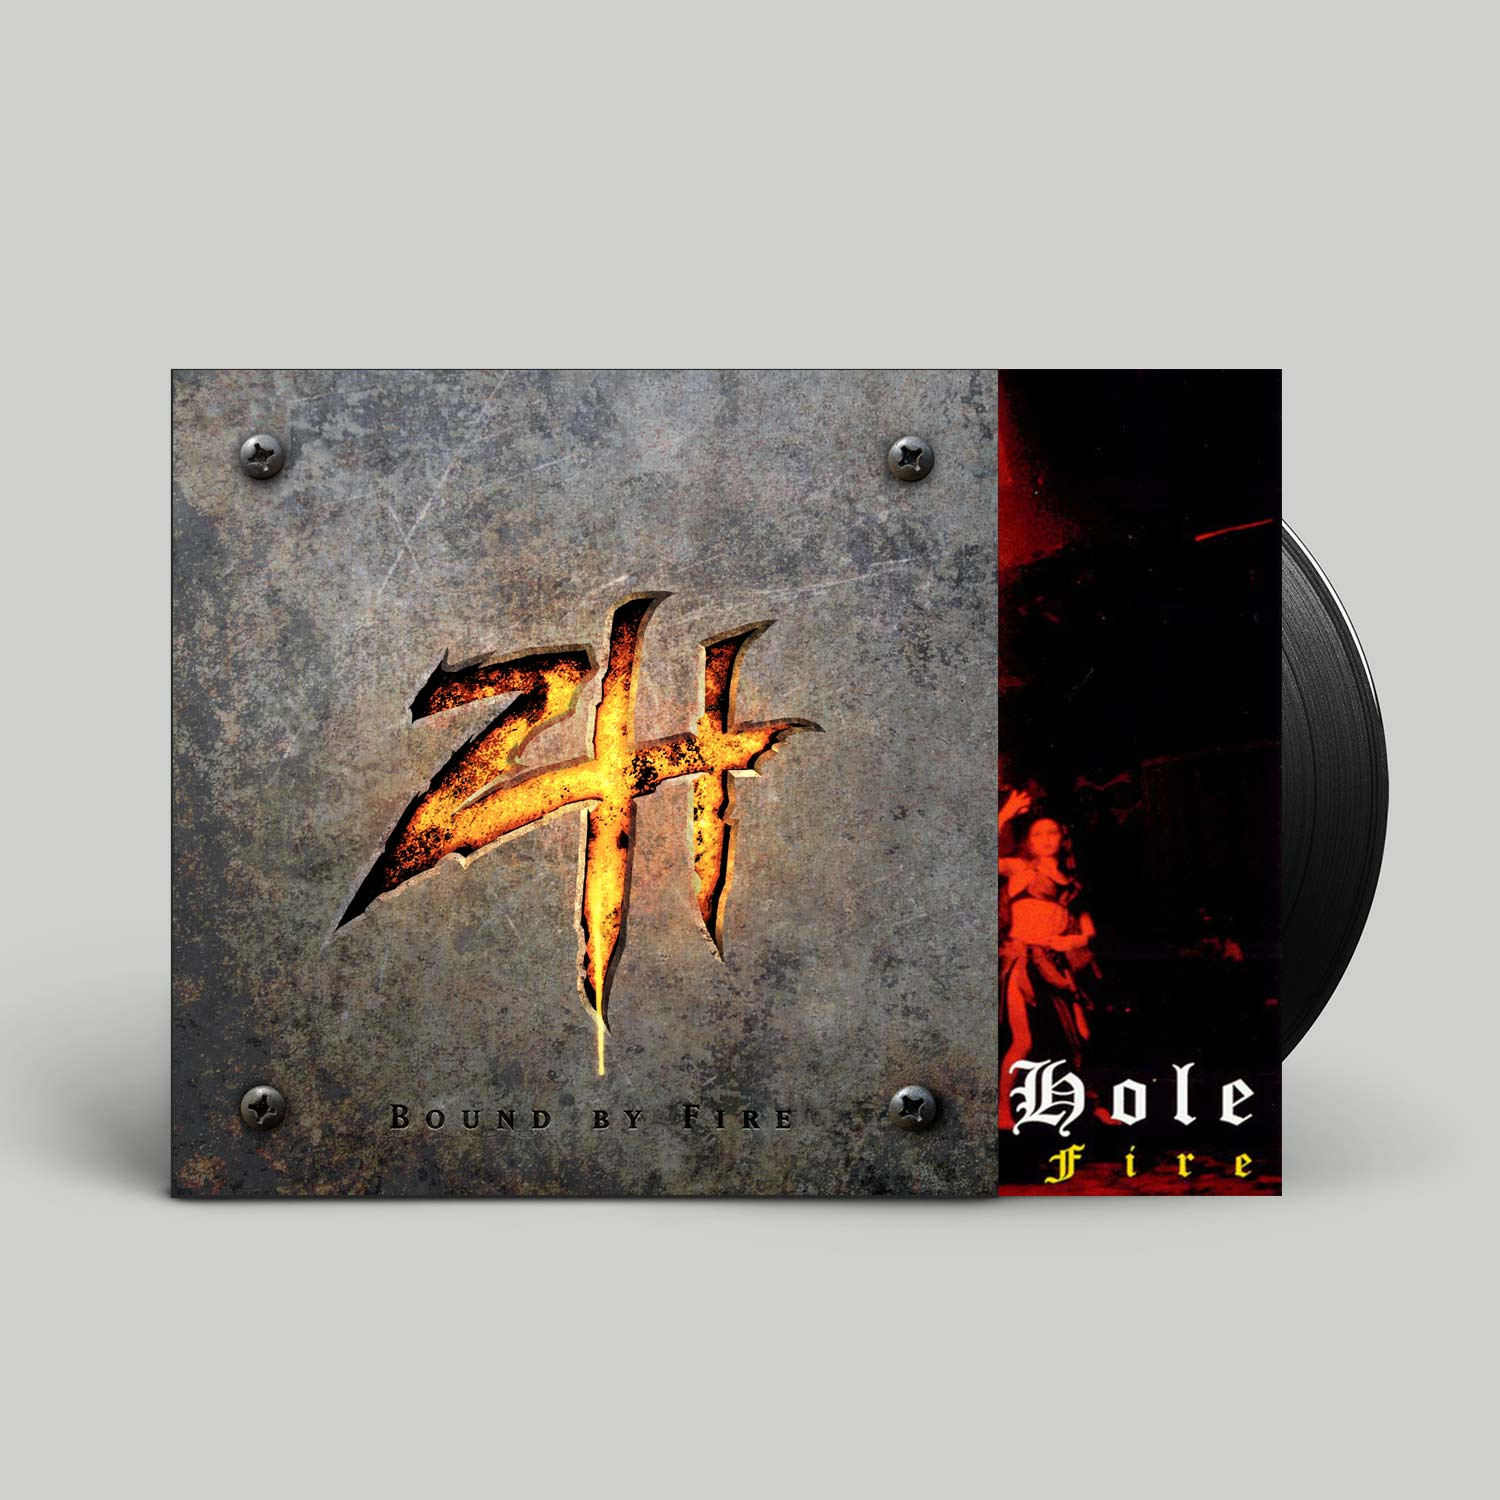 Zimmers Hole Bound By Fire Black Hole 180 Gram Vinyl